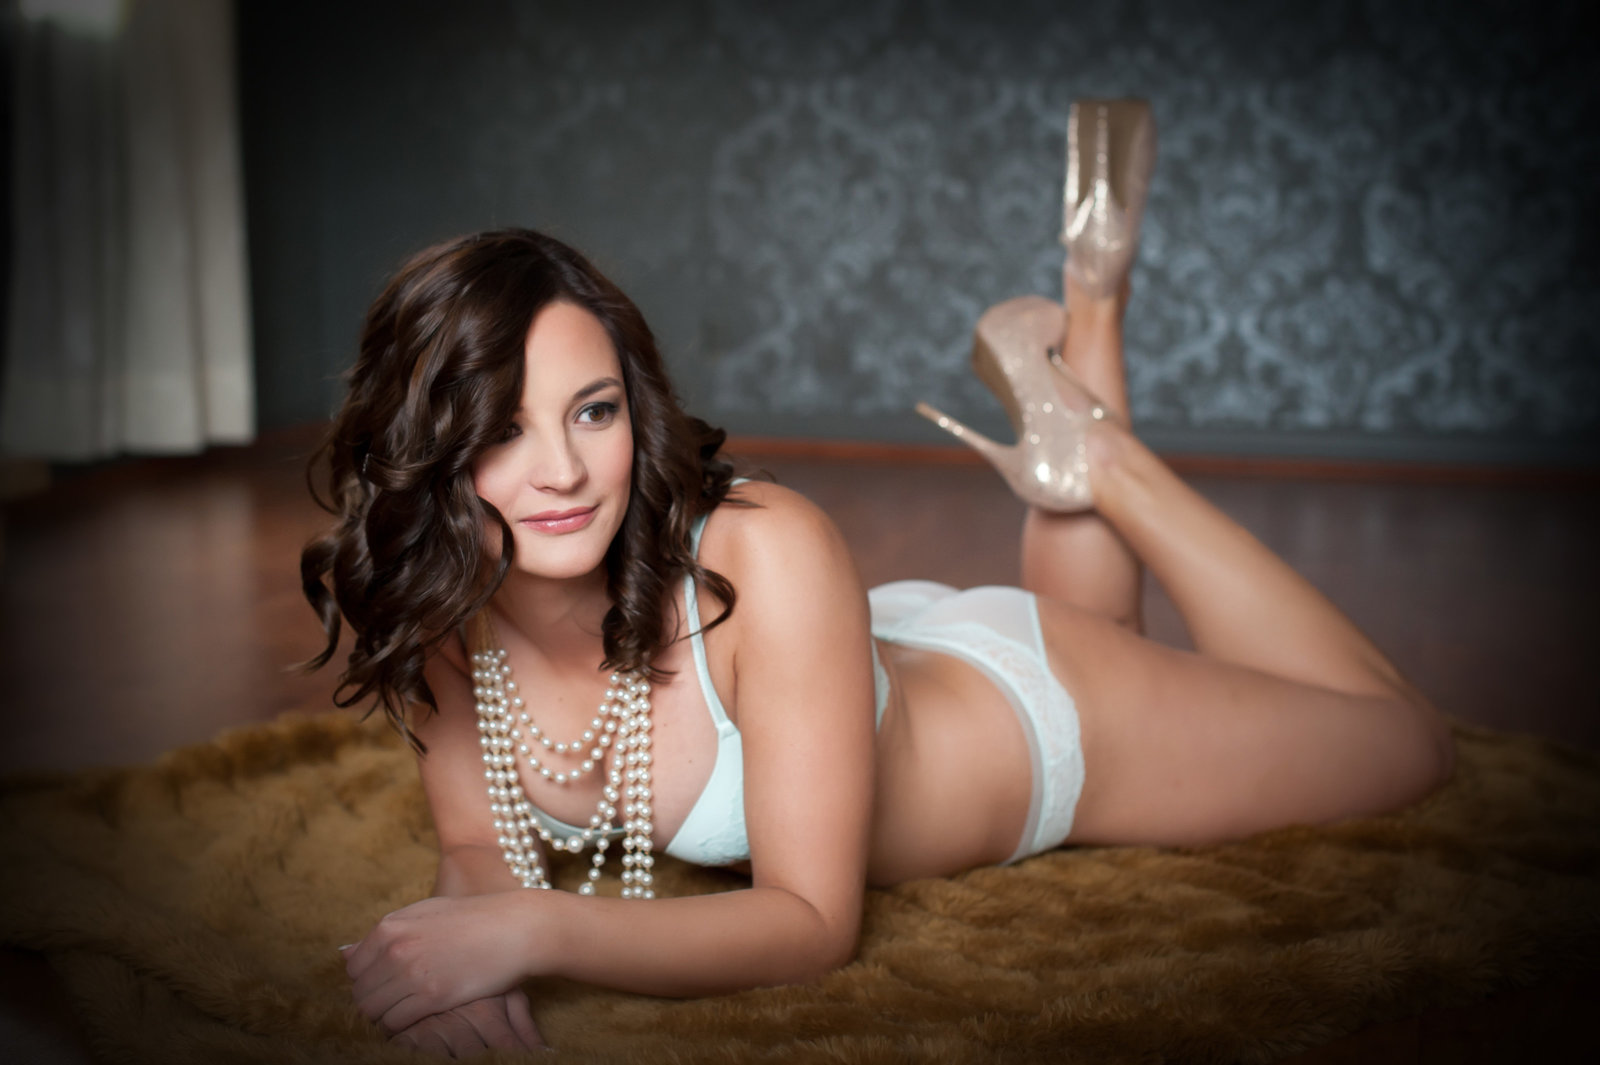 minneapolis-boudoir-photography-200